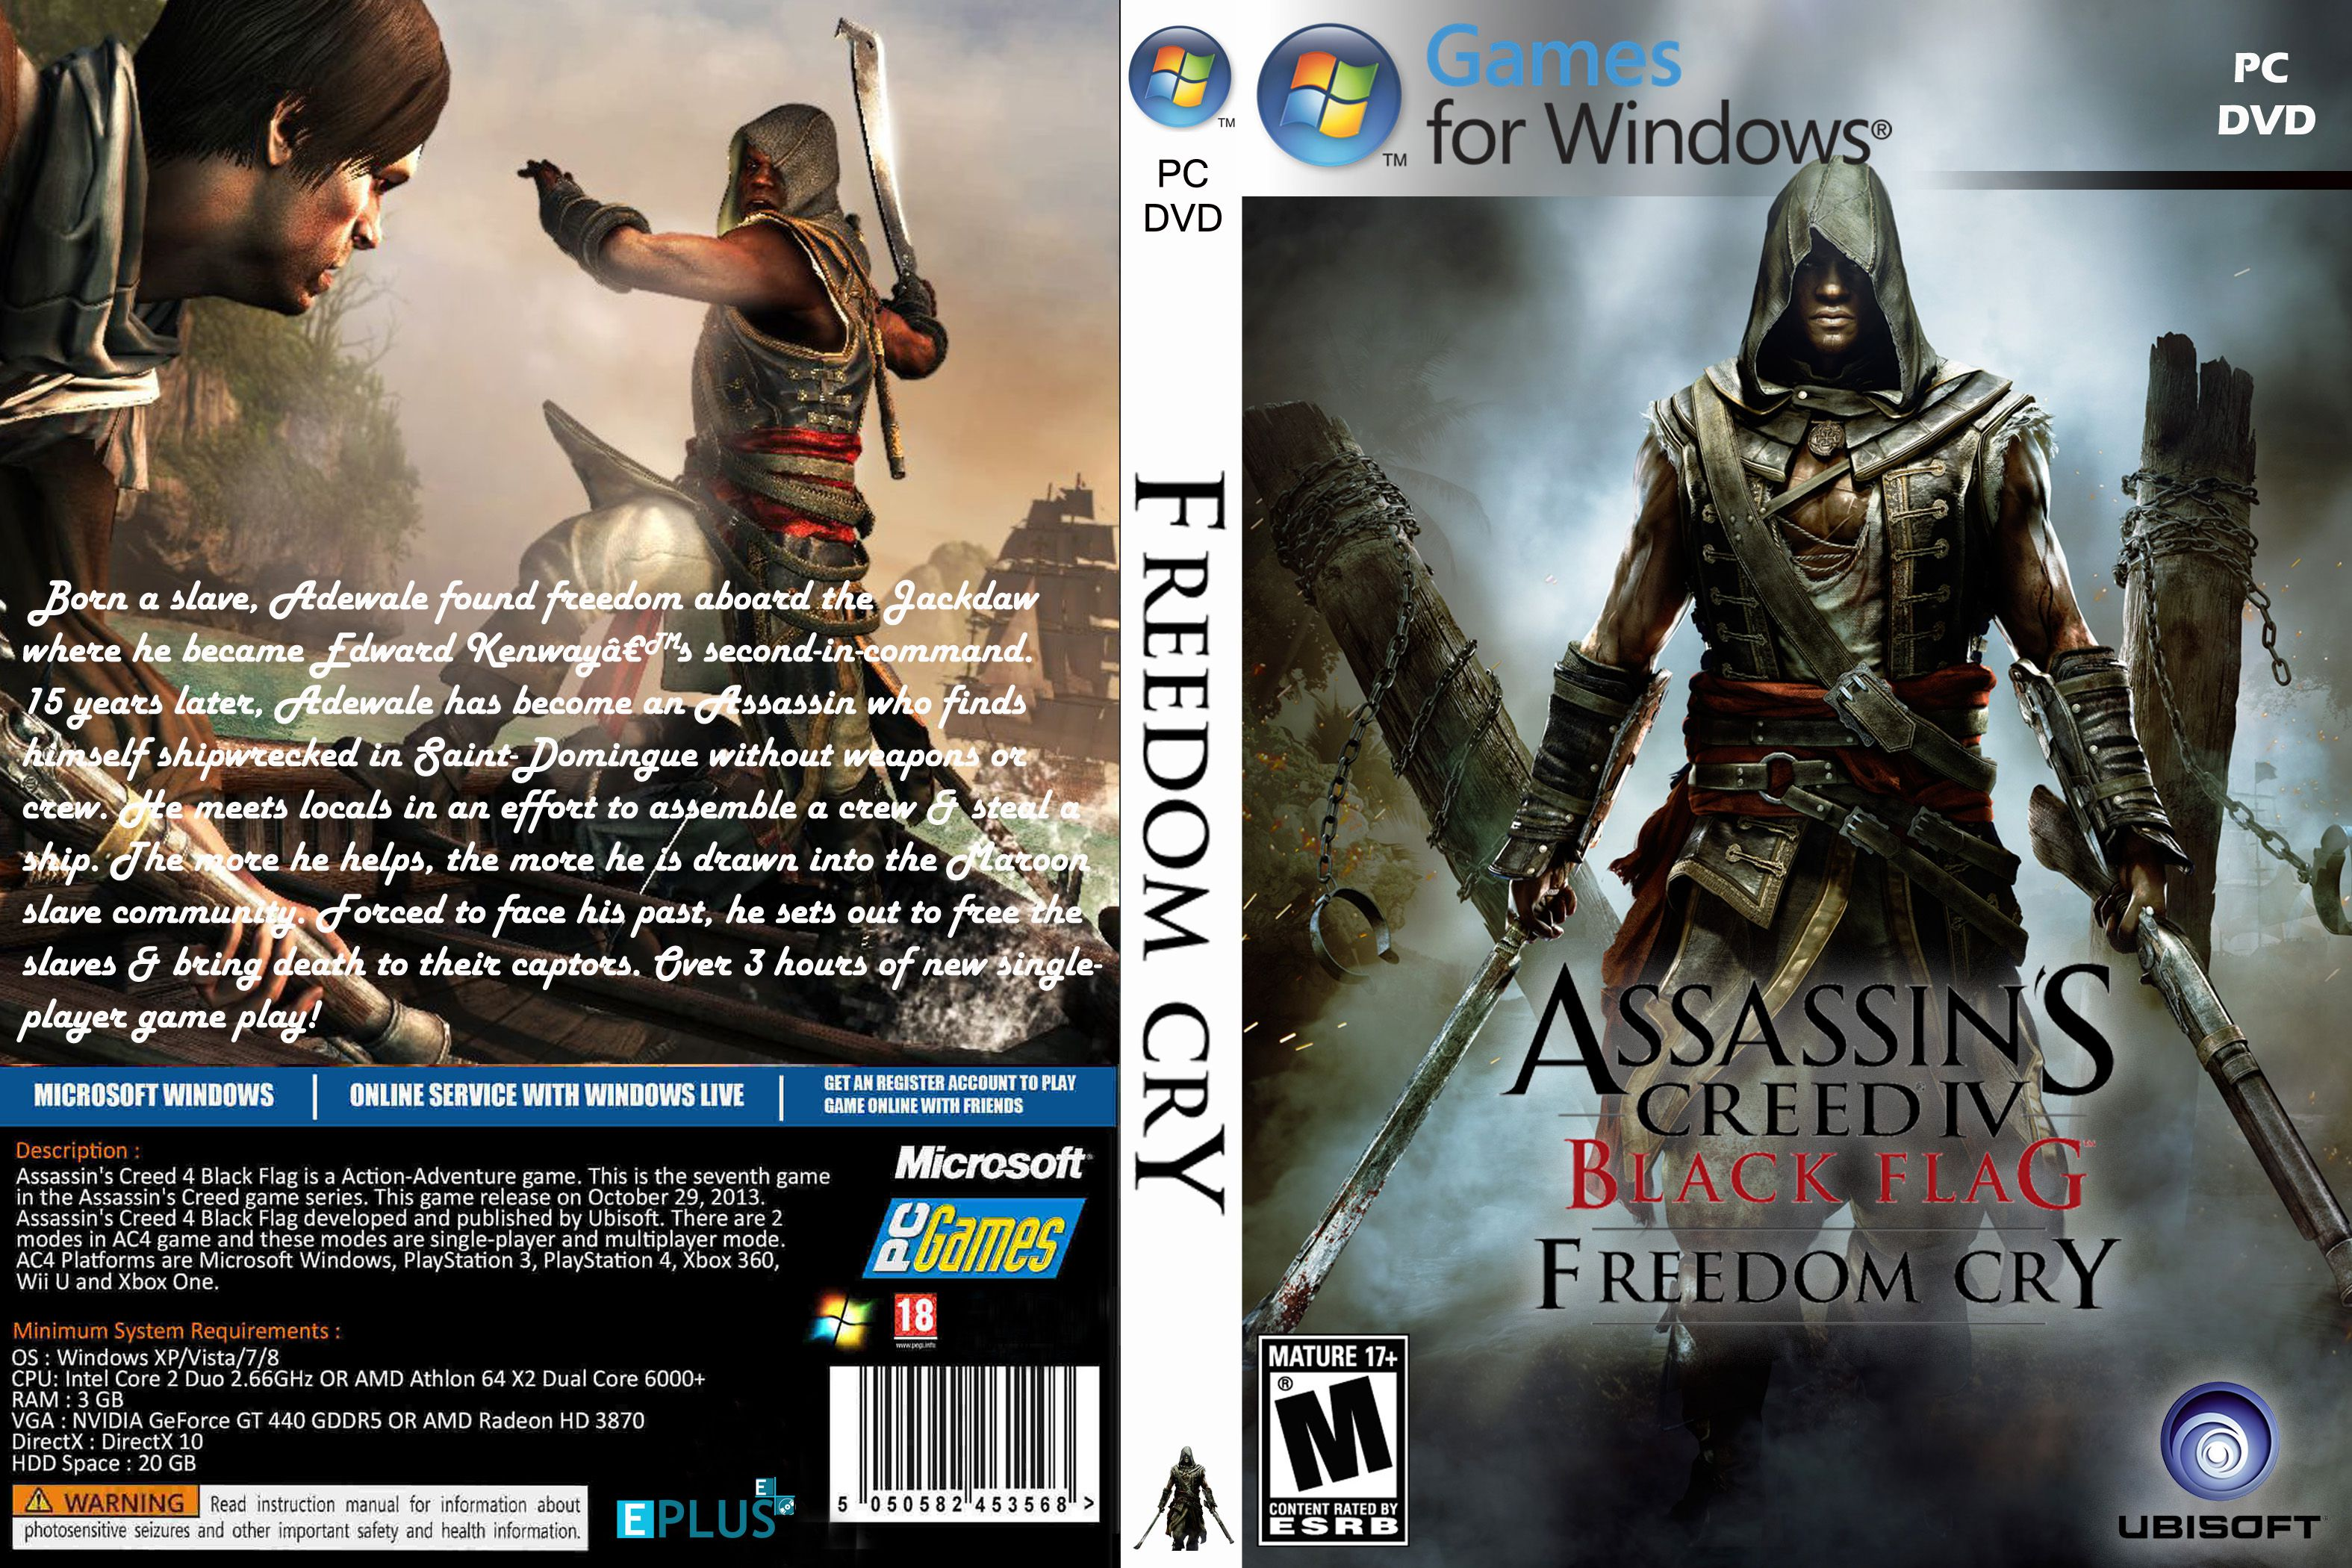 Capa Assassins Creed IV Black Flag Freedom Cry PC